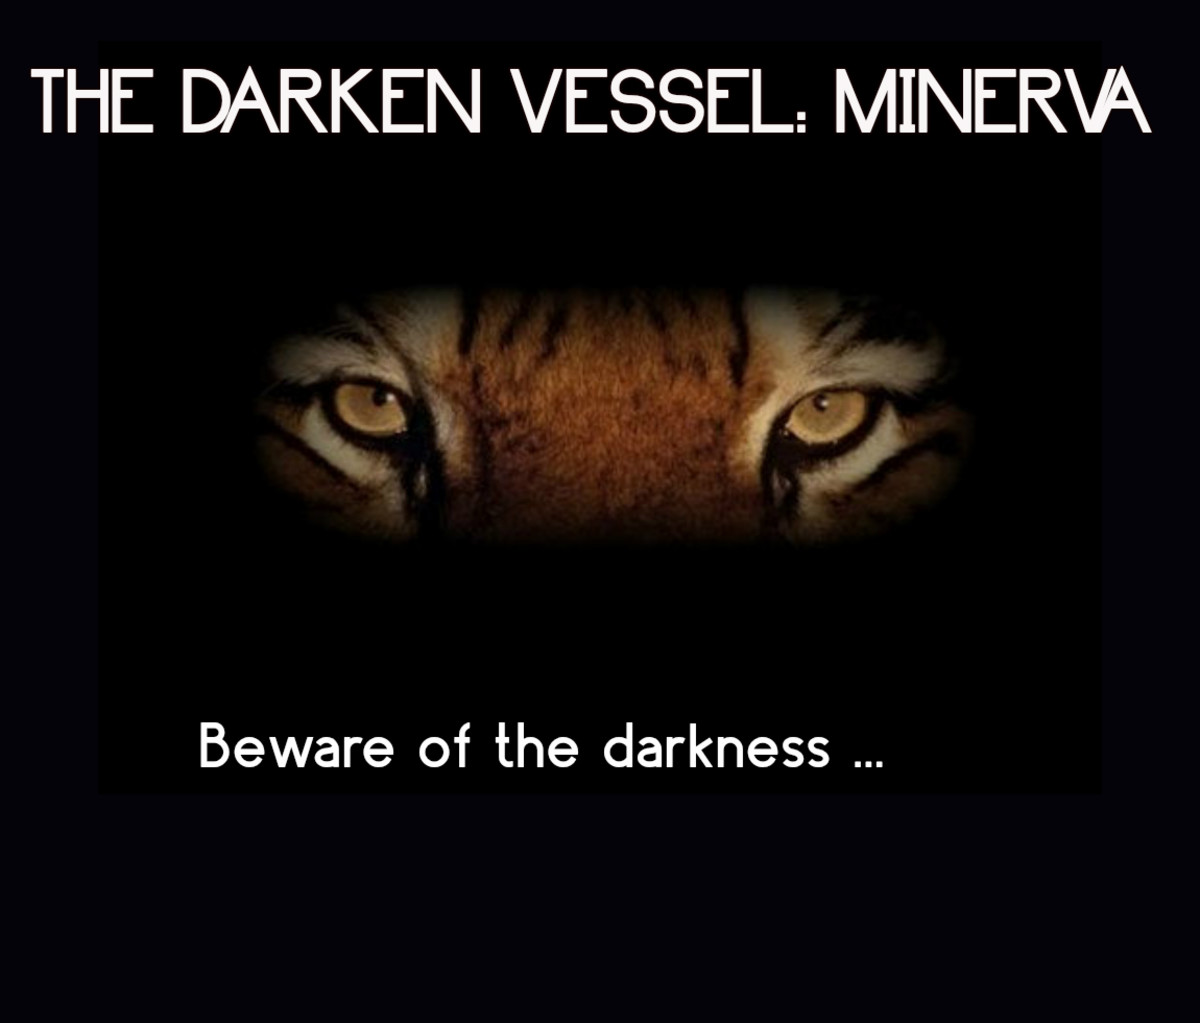 The Darken Vessel: Minerva 15